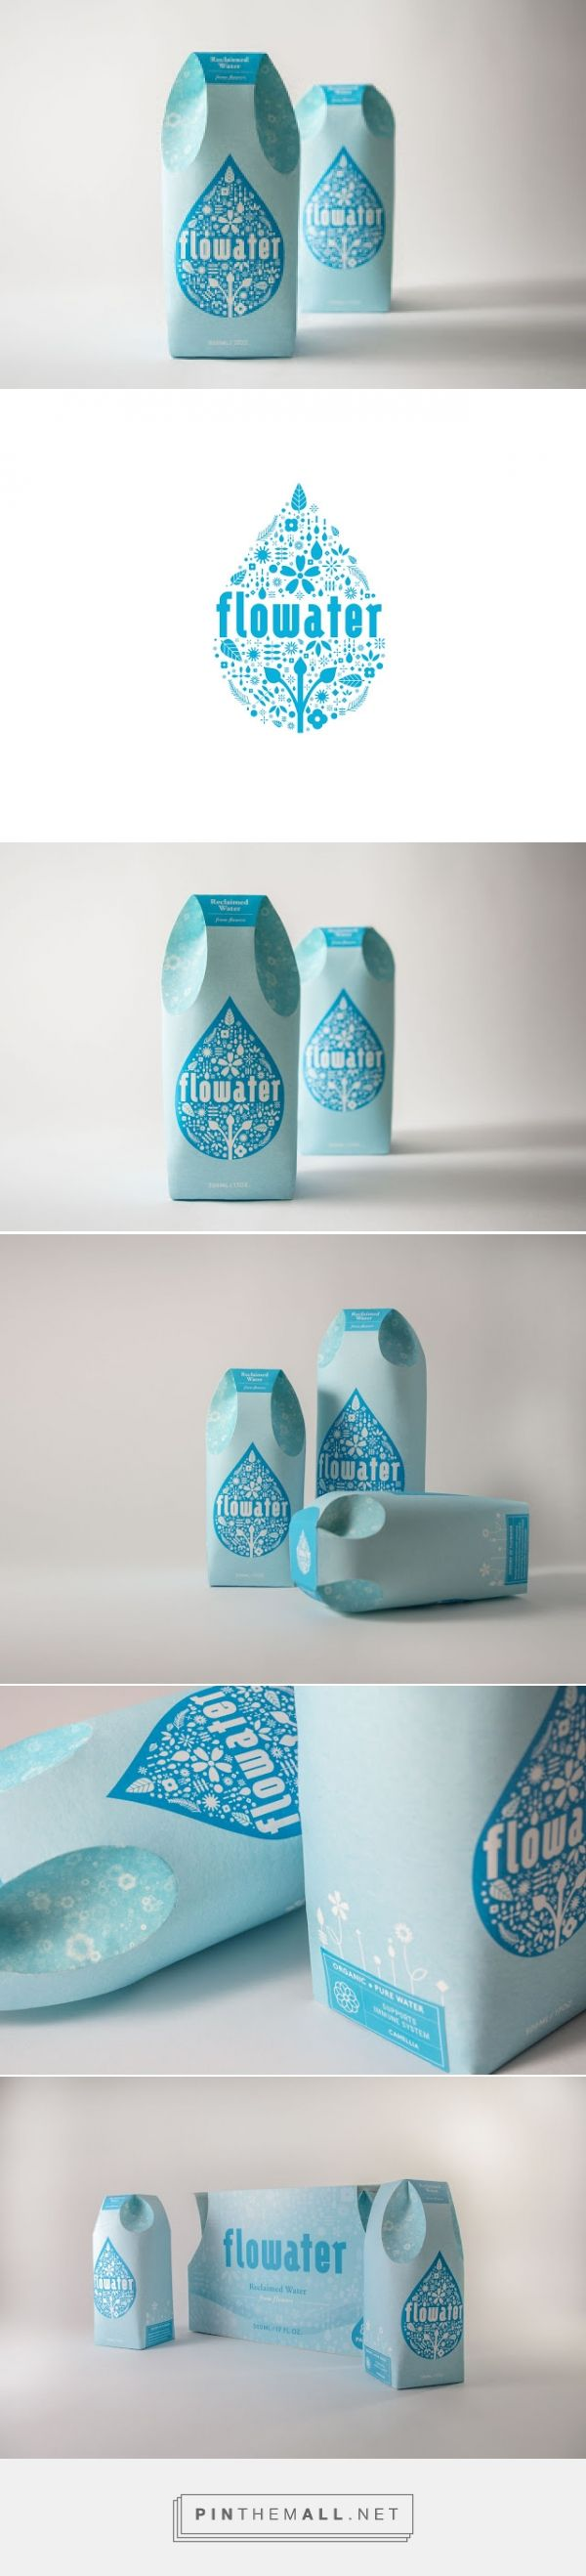 Flowater is a tetra pak of drinking water, which is extracted from flowers that have a healing property for human body. The logo is the water drop shape that contains the ingredient inside. In an effort to maintain the brand's identity with clearness and pureness, the system equips a cool tone color palette, and a refreshed look and feel for drinking water. The structure is made of 100% recyclable paper container.